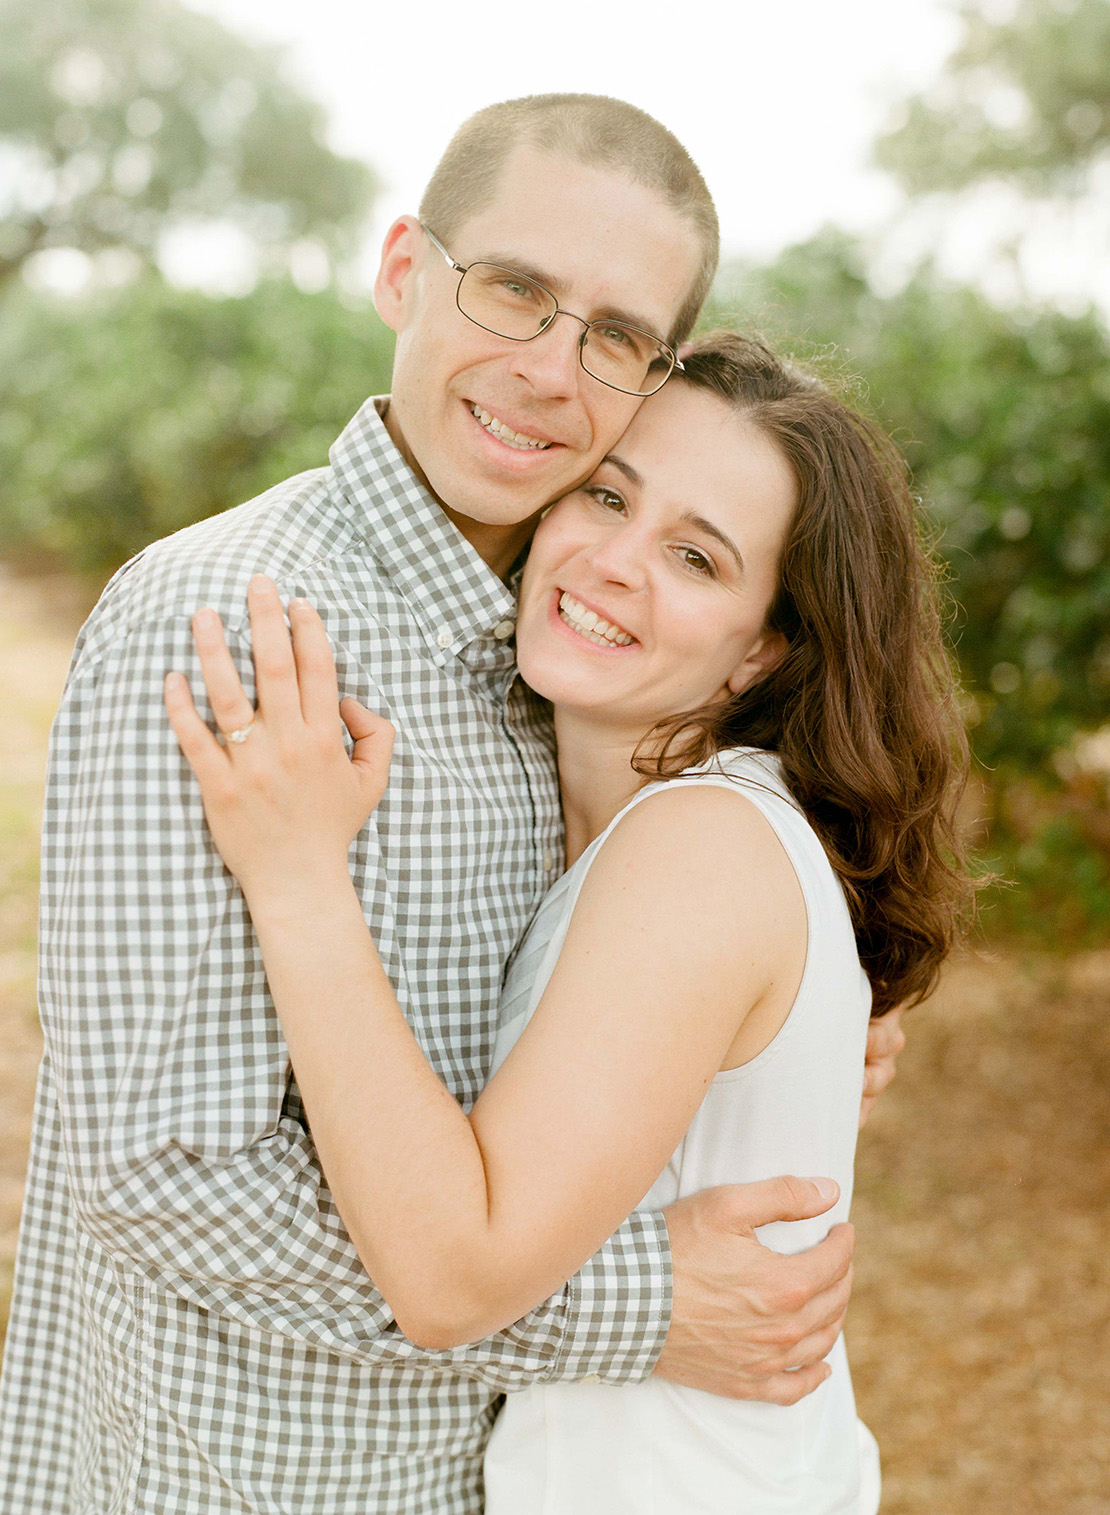 10_engagement_session_fine_art_wedding_photographer_happy_portrait_orlando_florida_film